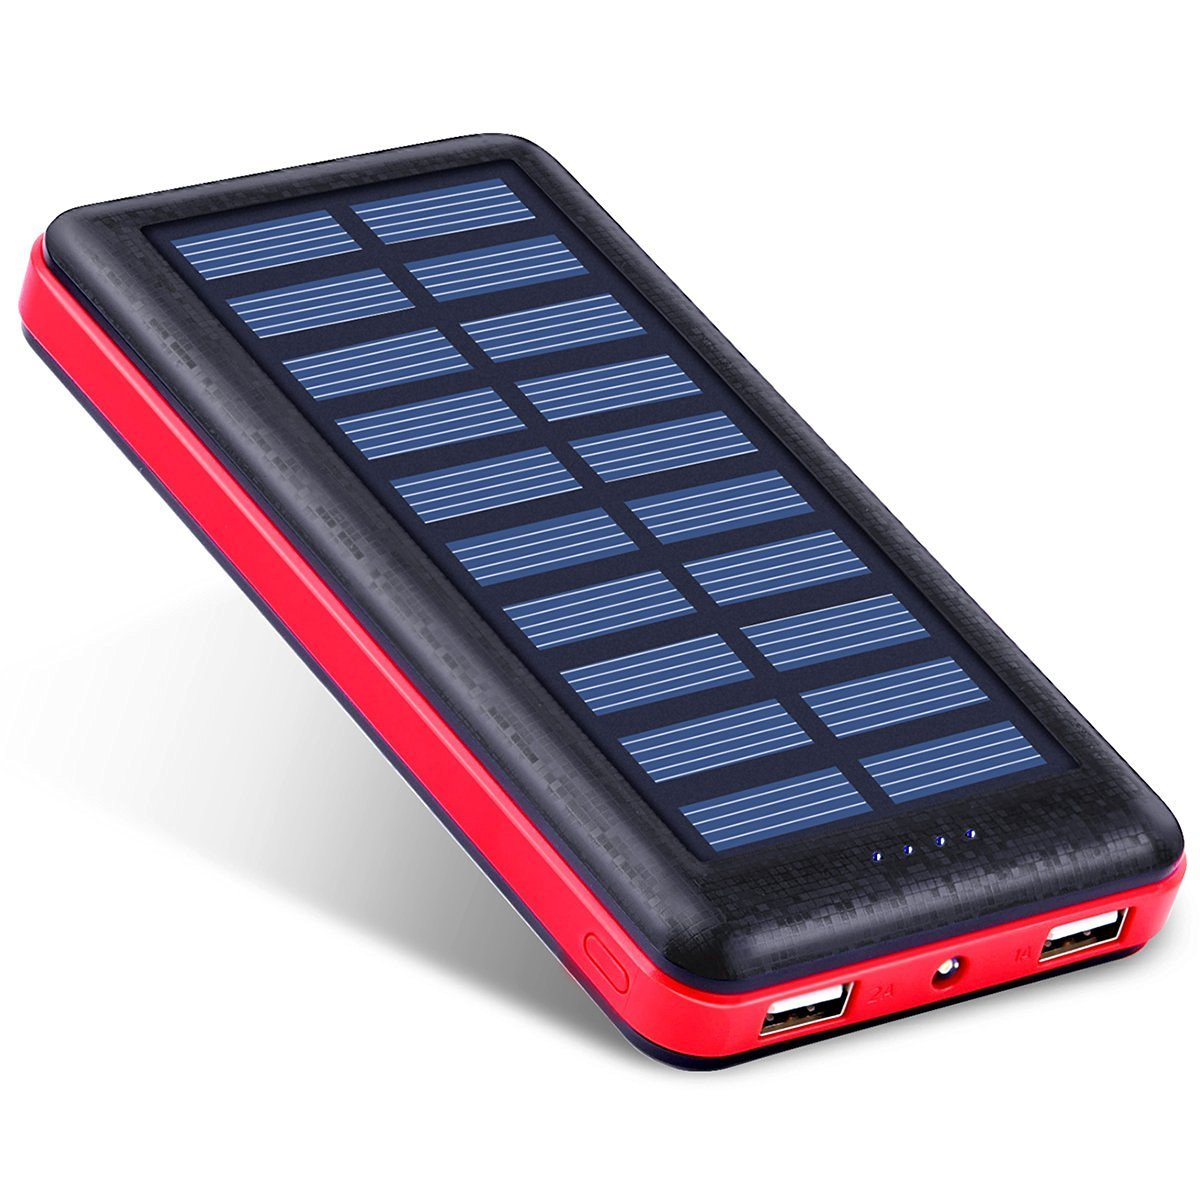 Battery Pack Antun Solar Charger Solar Power Bank 22400mAh High Capacity Power Bank Dual USB Port with Power Indiacator Travel External Solar Phone Charger with LED Flashlight Charge Protection (Rose)